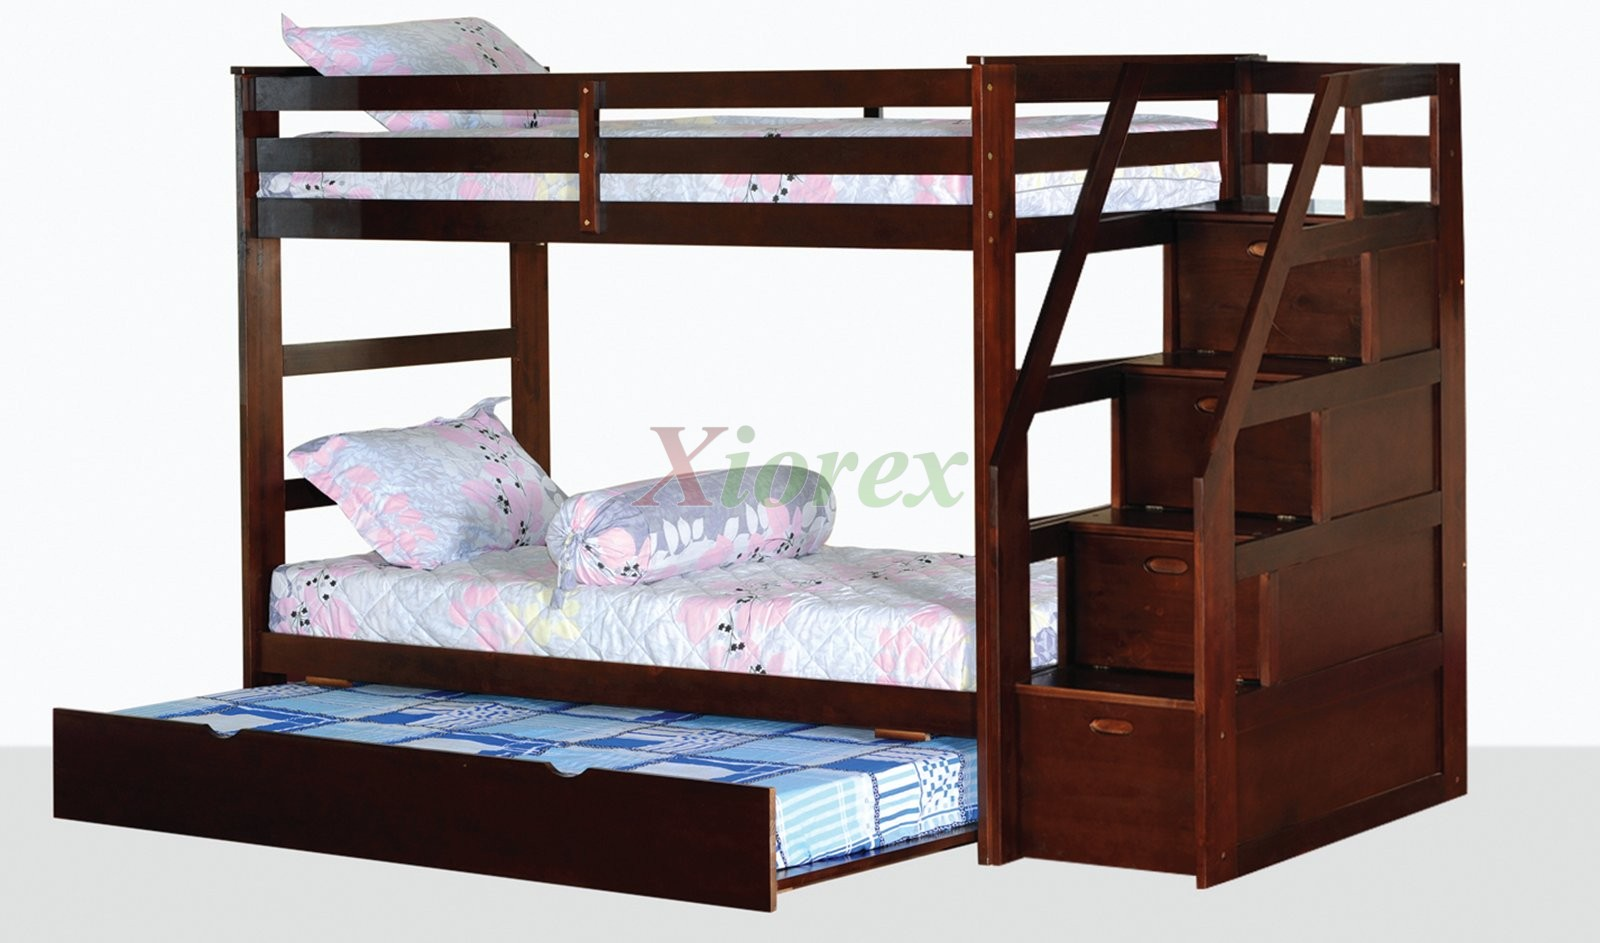 Bed Over Stair Box With Storage And Stairs: Alcor Twin Over Twin Bunk Bed With Storage Stairs And